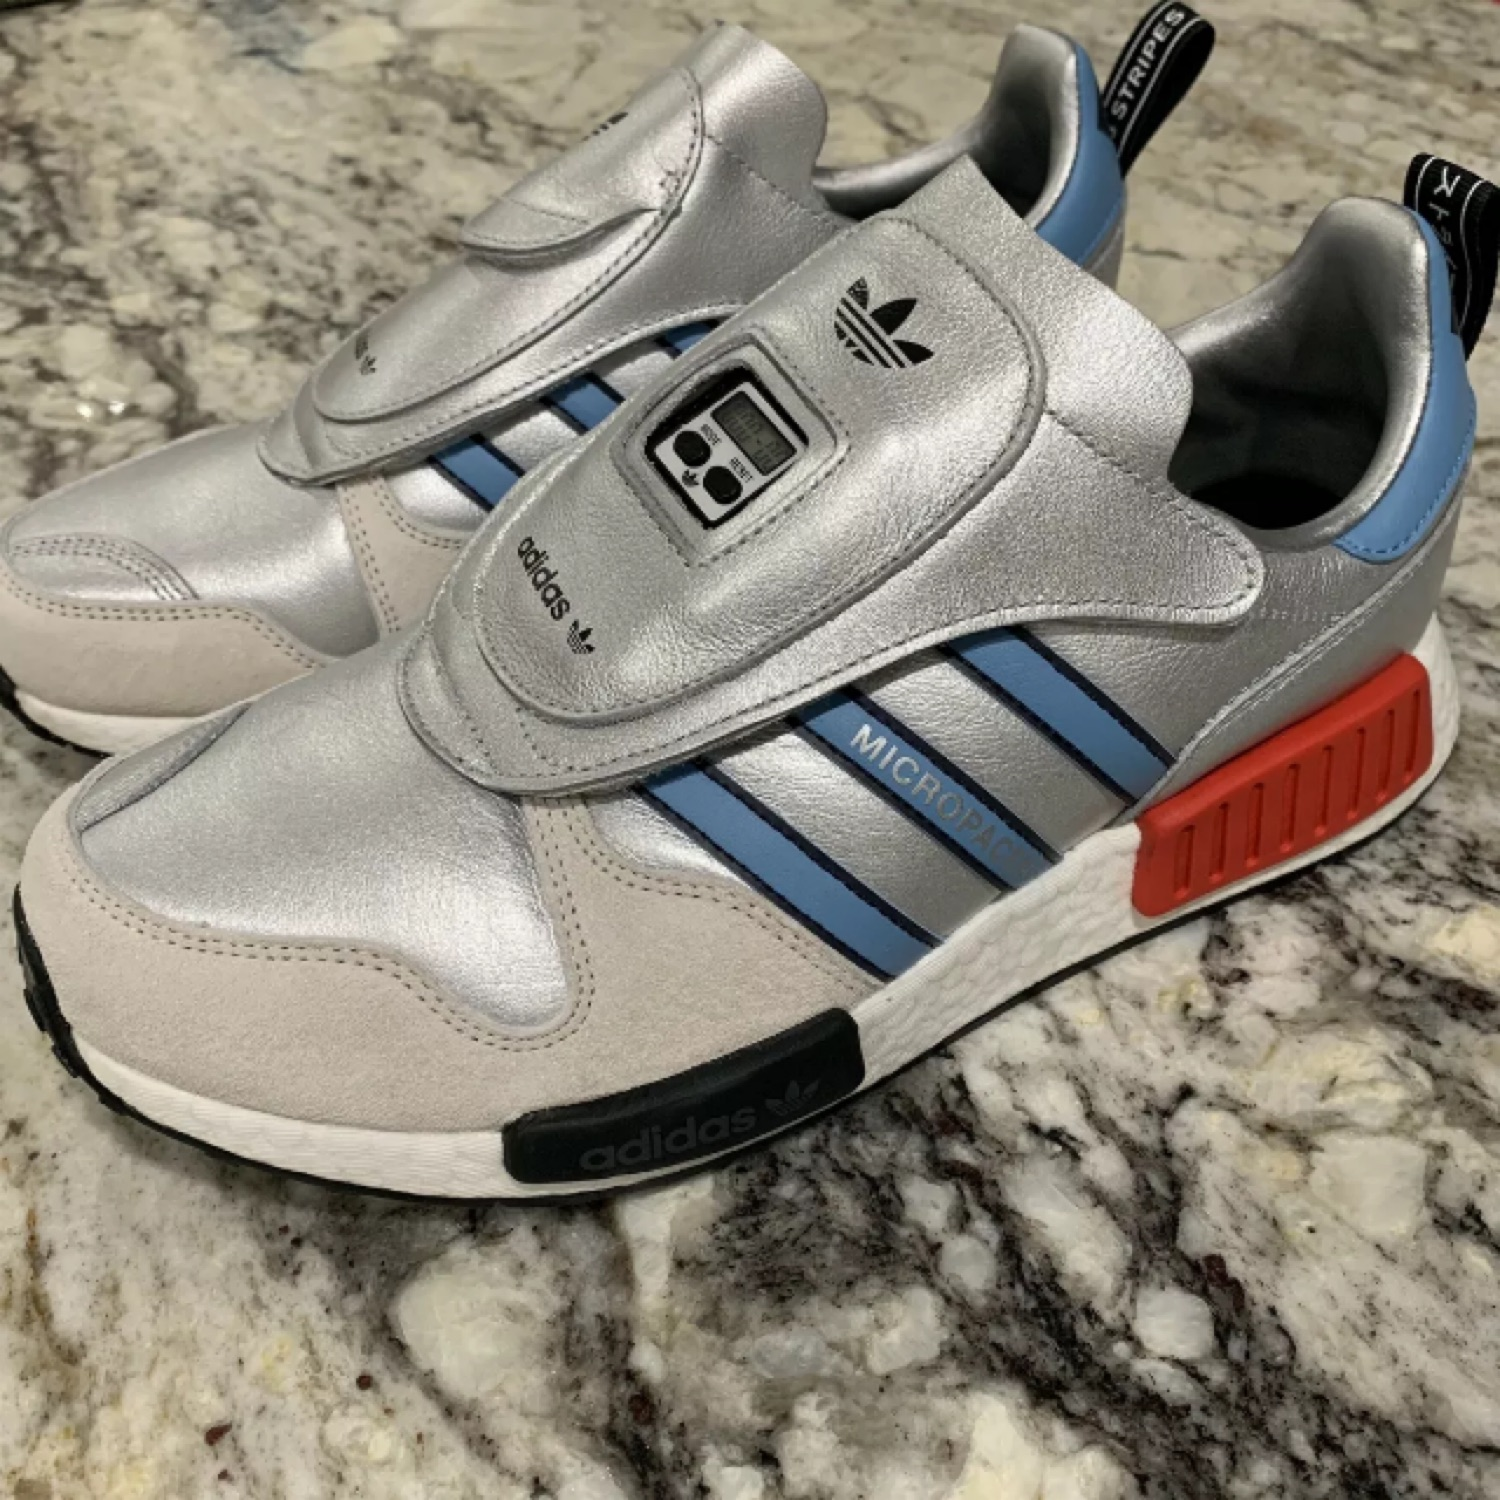 separation shoes 776f5 b7a09 Adidas Originals Micropacer Xr1 Boost Nmd 10